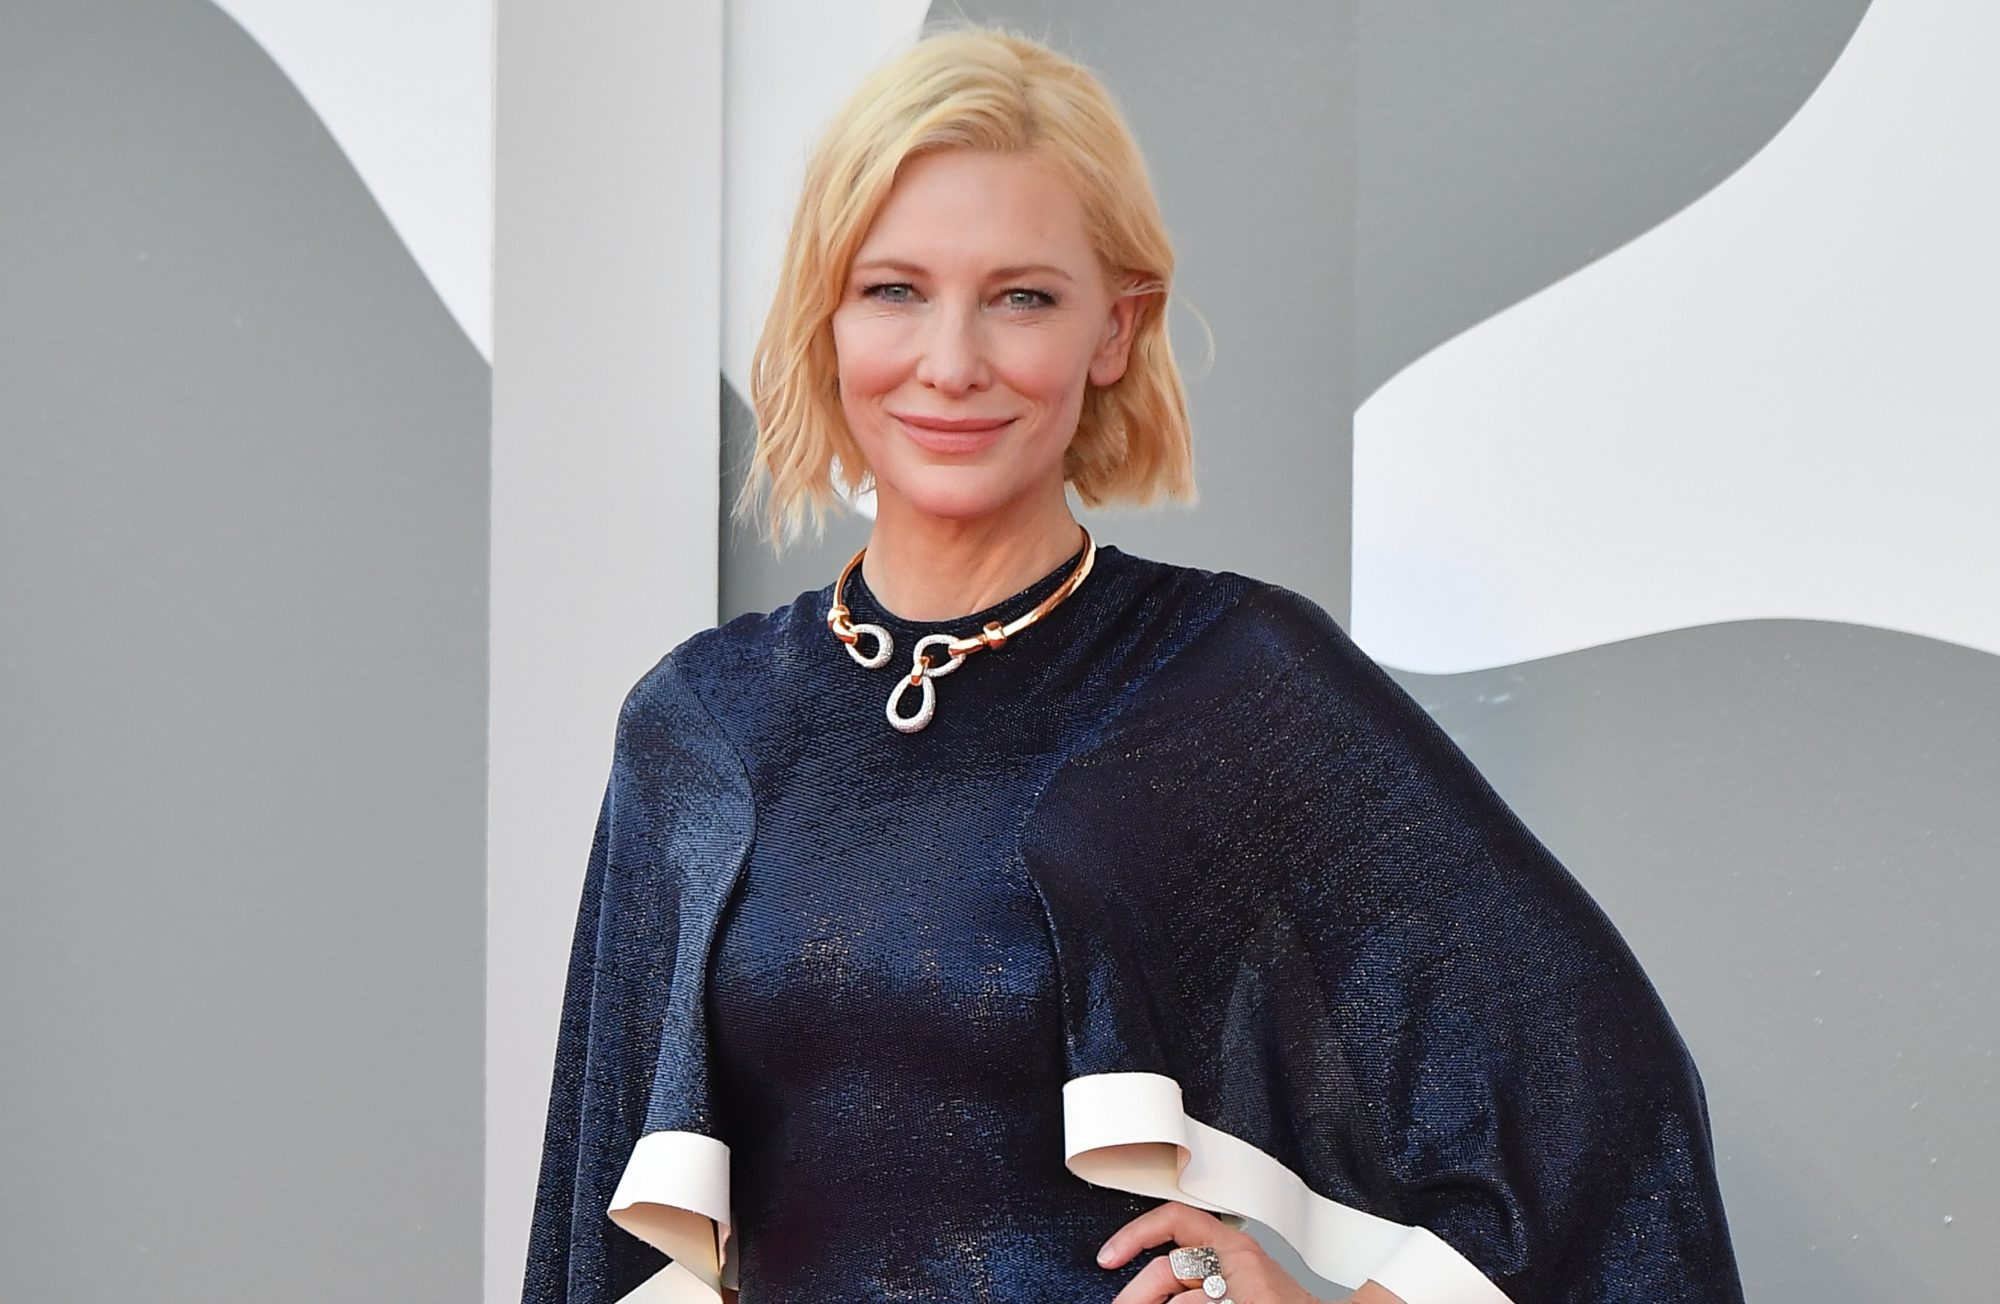 cate blanchett red carpet fashion venice film festival